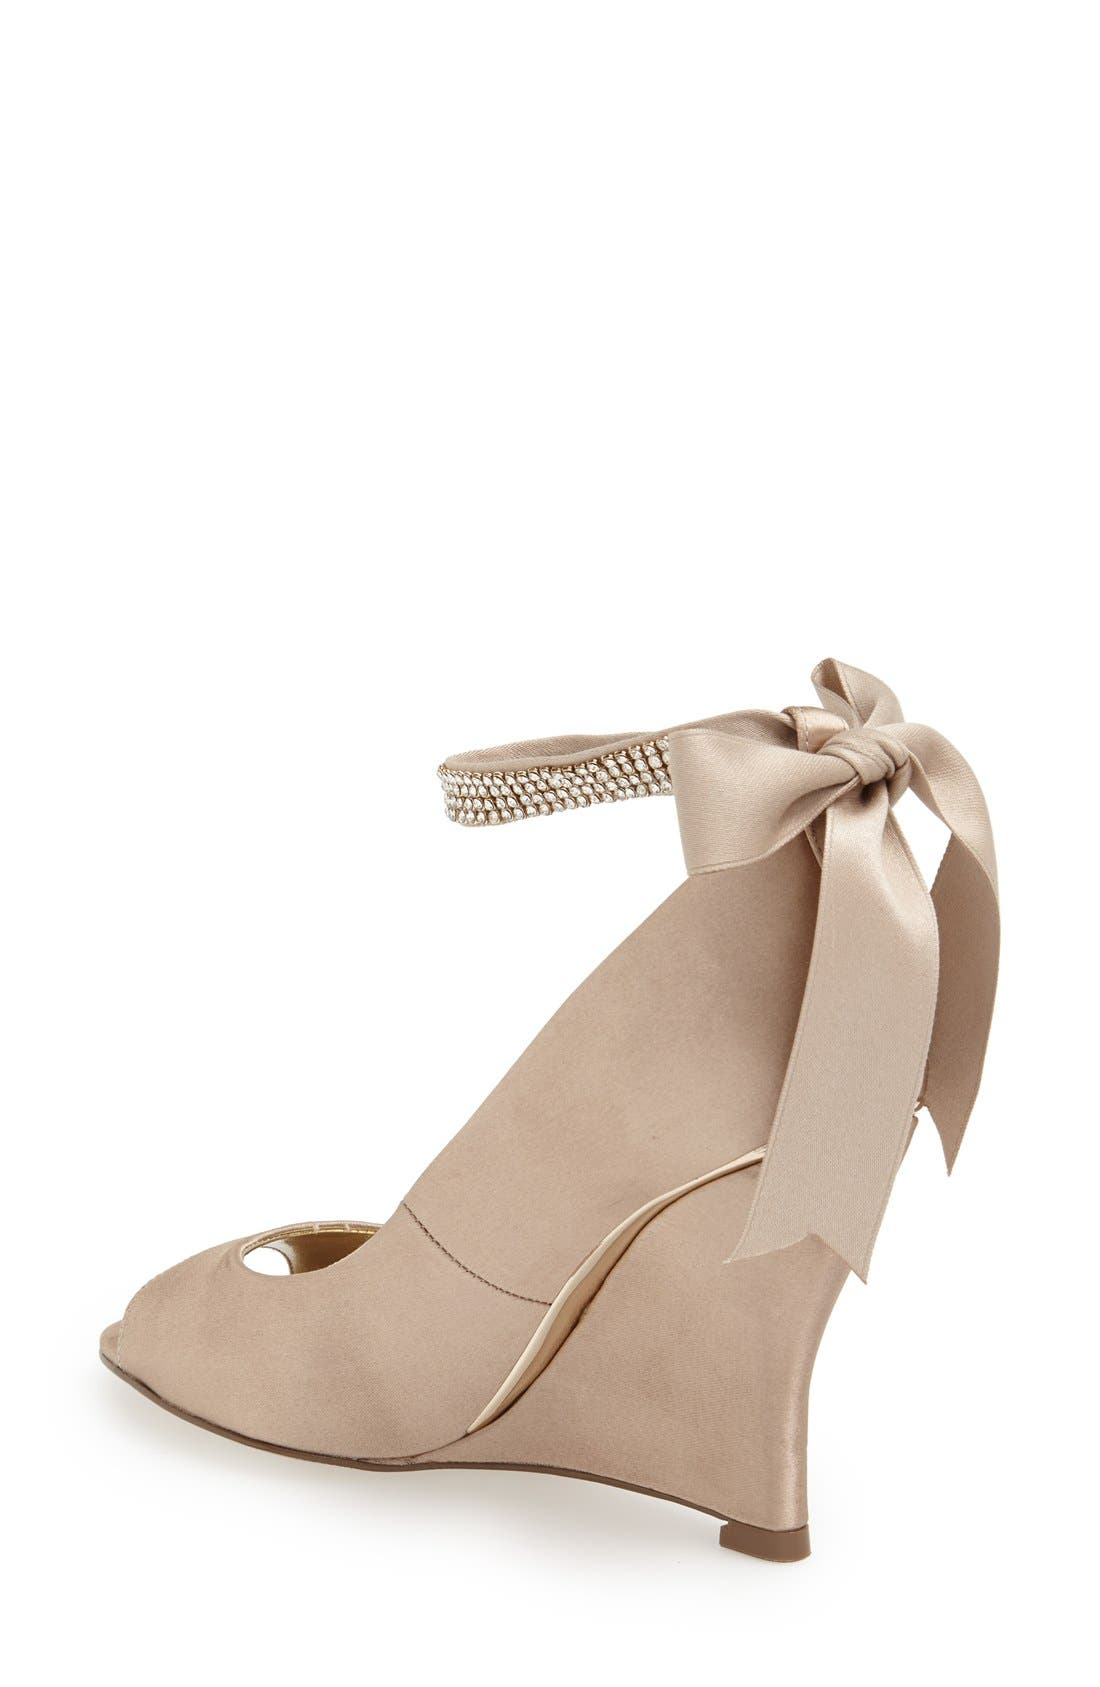 'Emma' Crystal Embellished Ankle Strap Pump,                             Alternate thumbnail 2, color,                             291